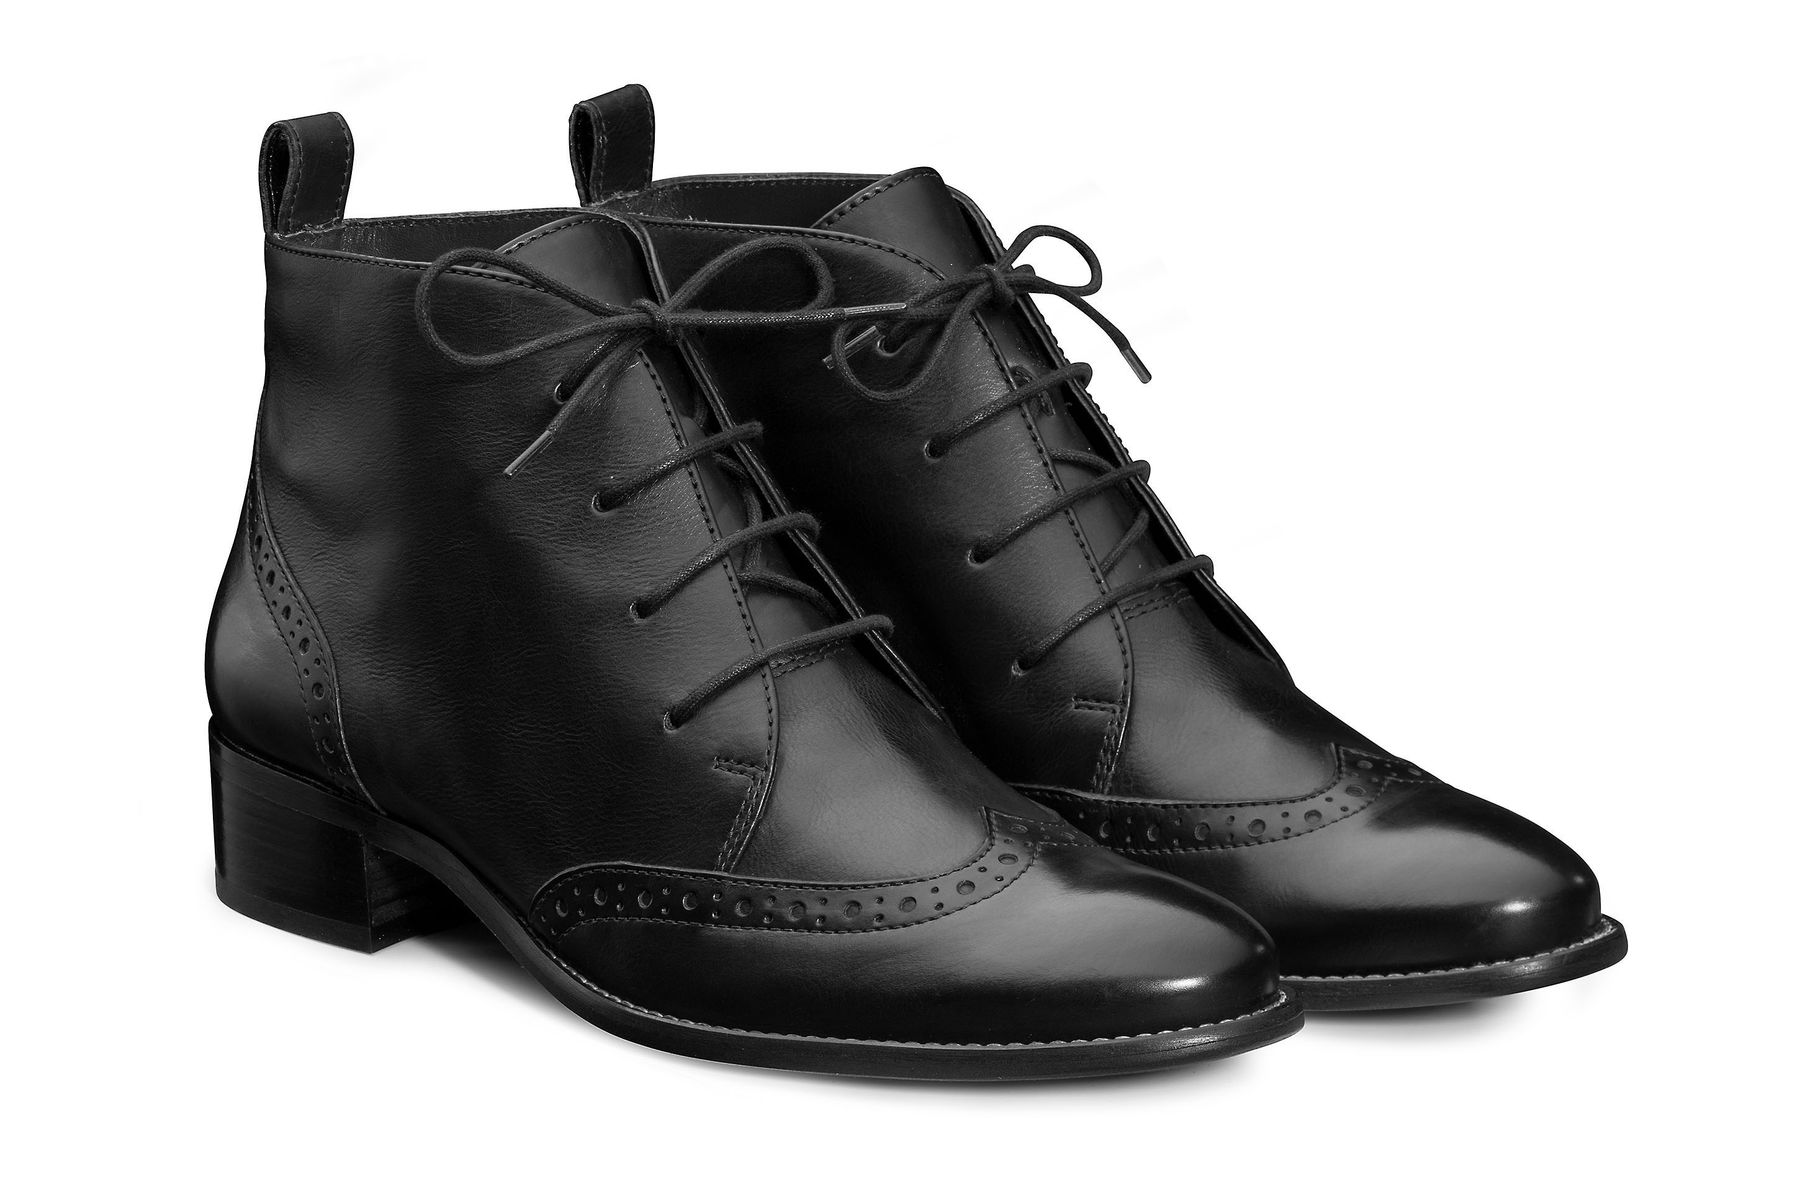 759a0b7634195 Lace Up Ankle Boots in Black - Paul Green